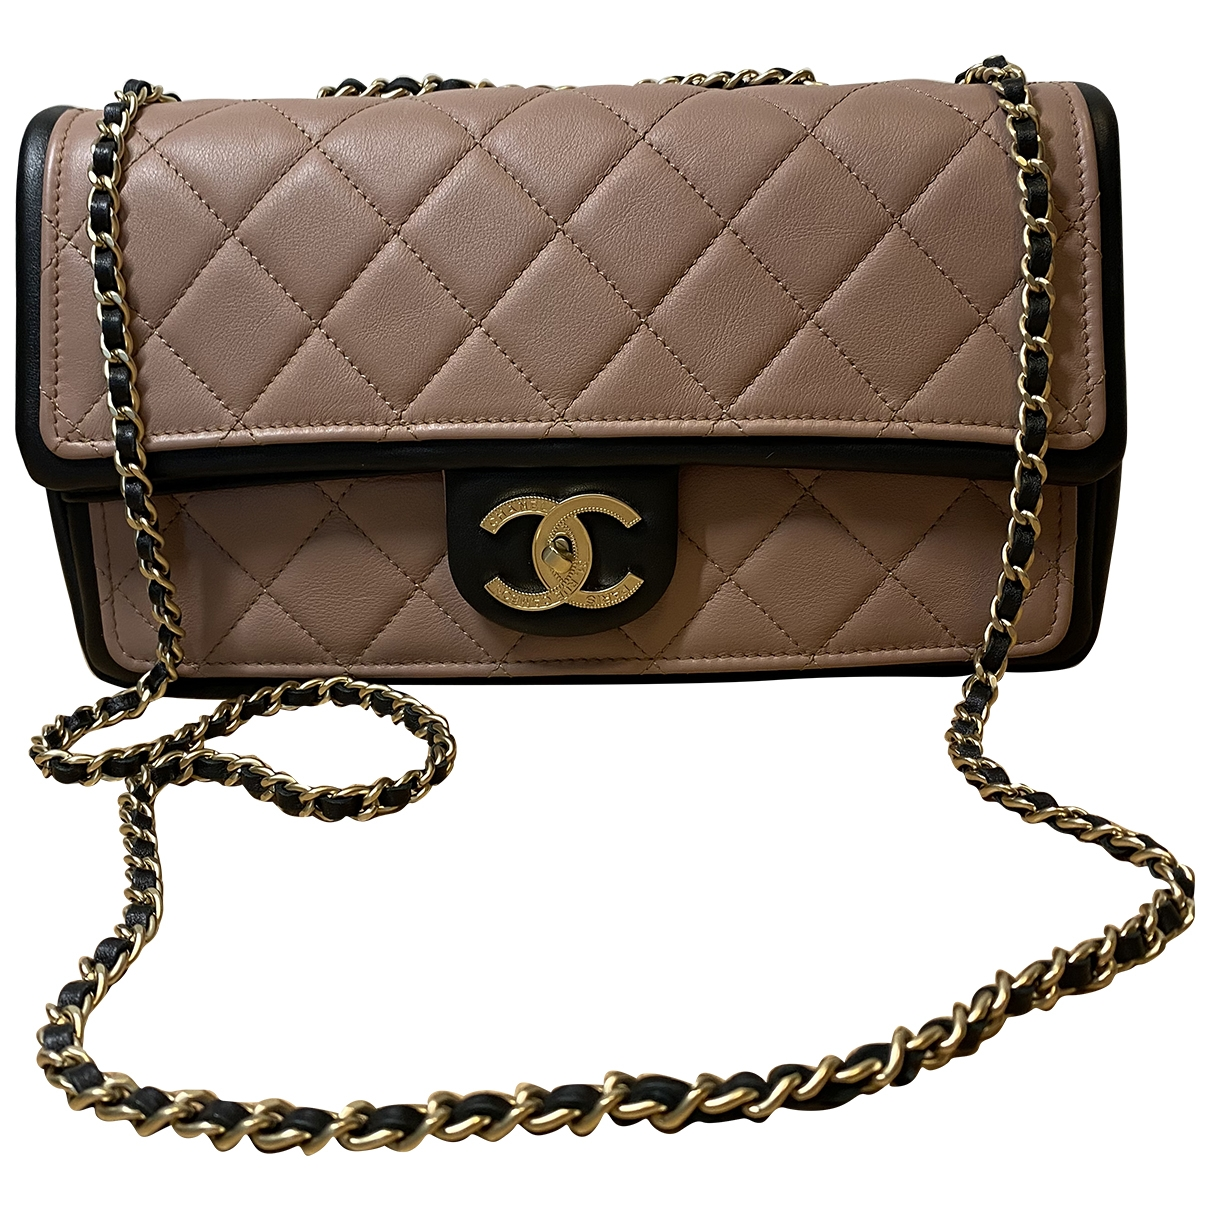 Chanel Timeless/Classique Beige Leather handbag for Women \N